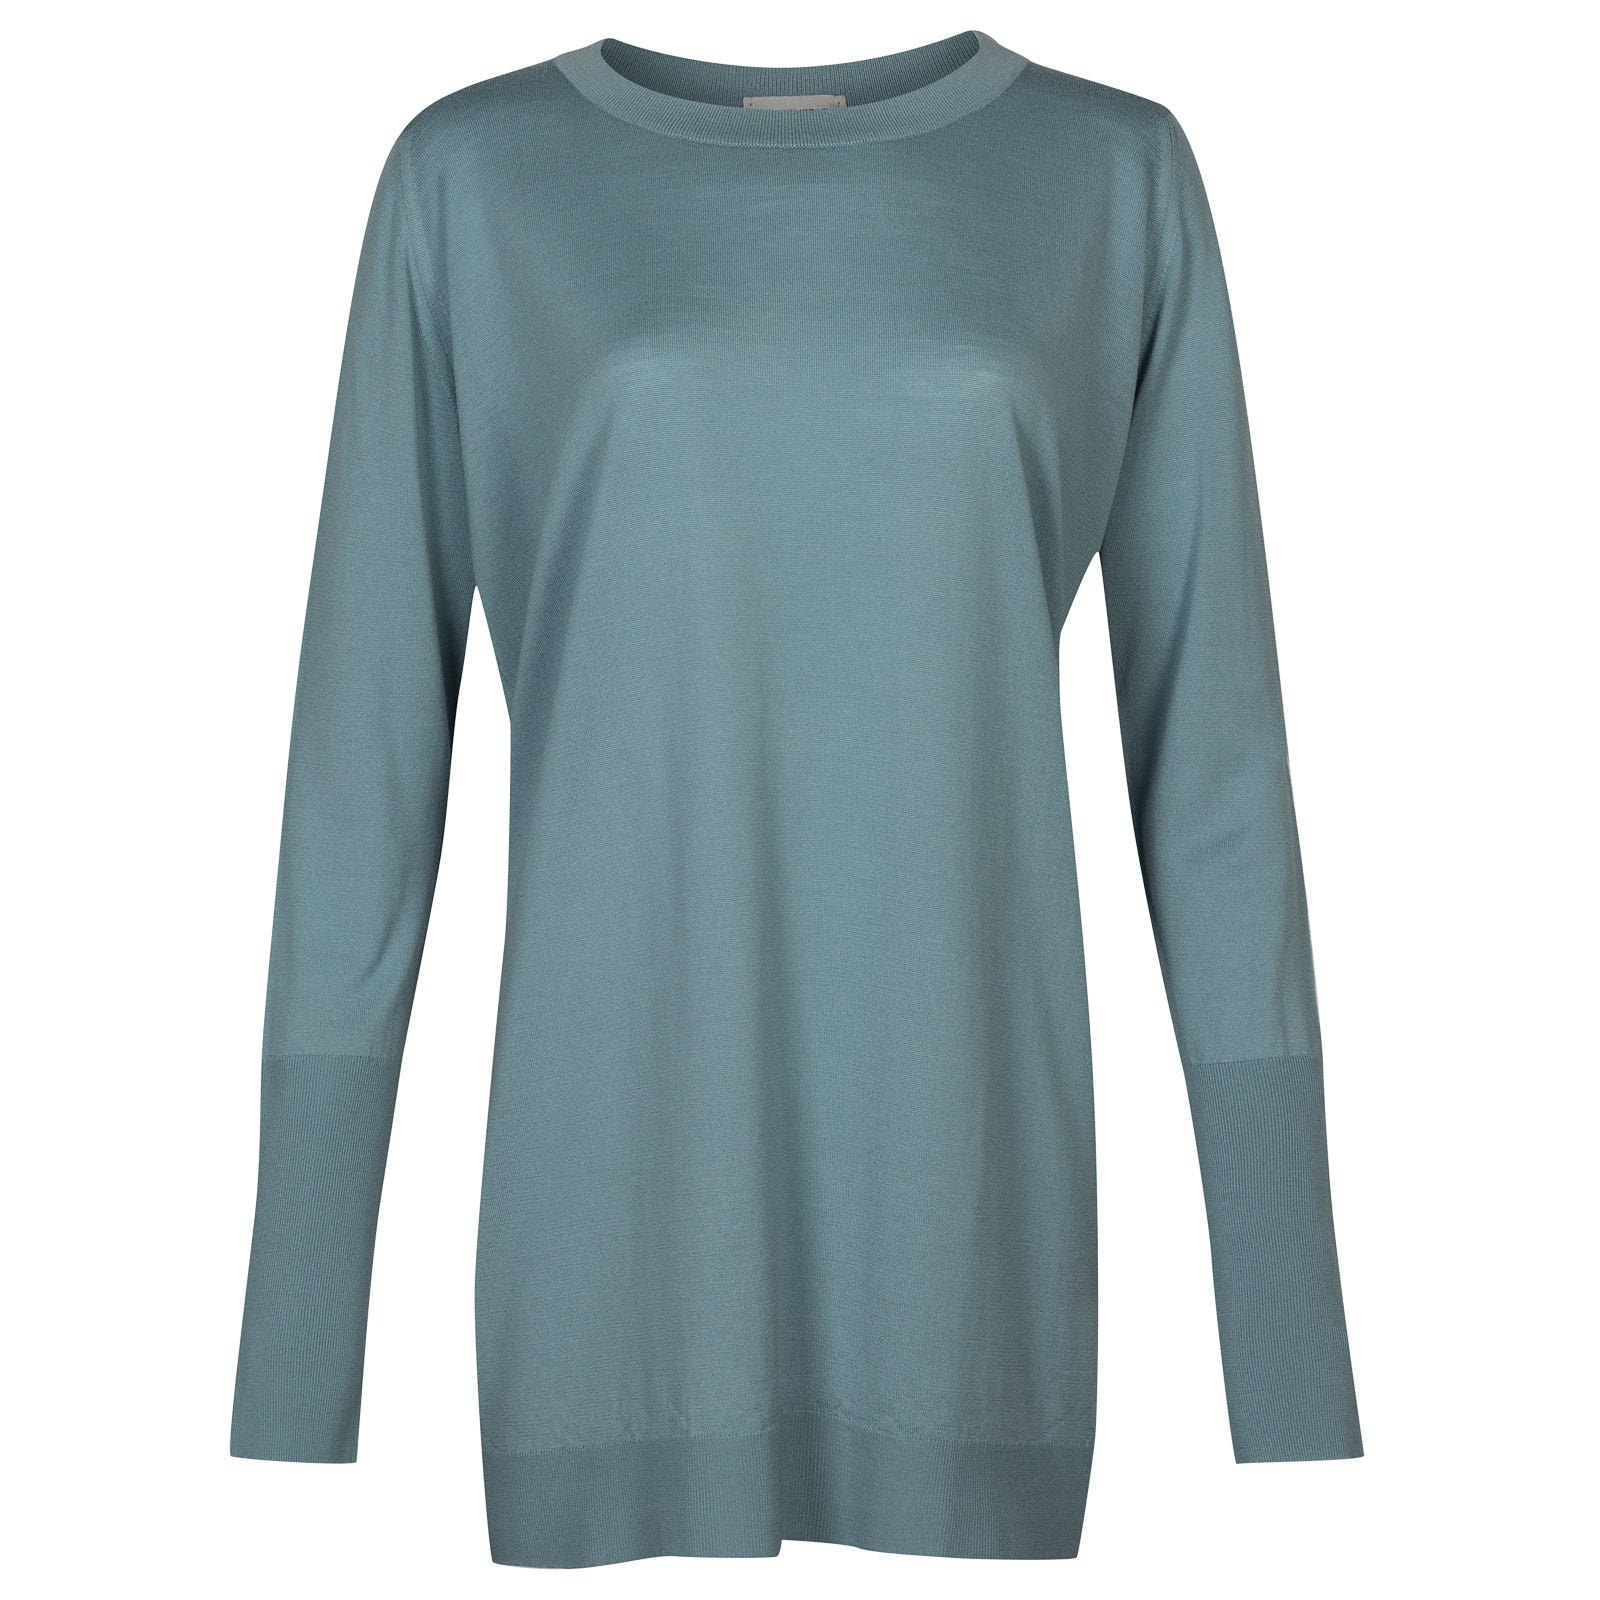 John Smedley molloy Merino Wool Sweater in Summit Blue-L